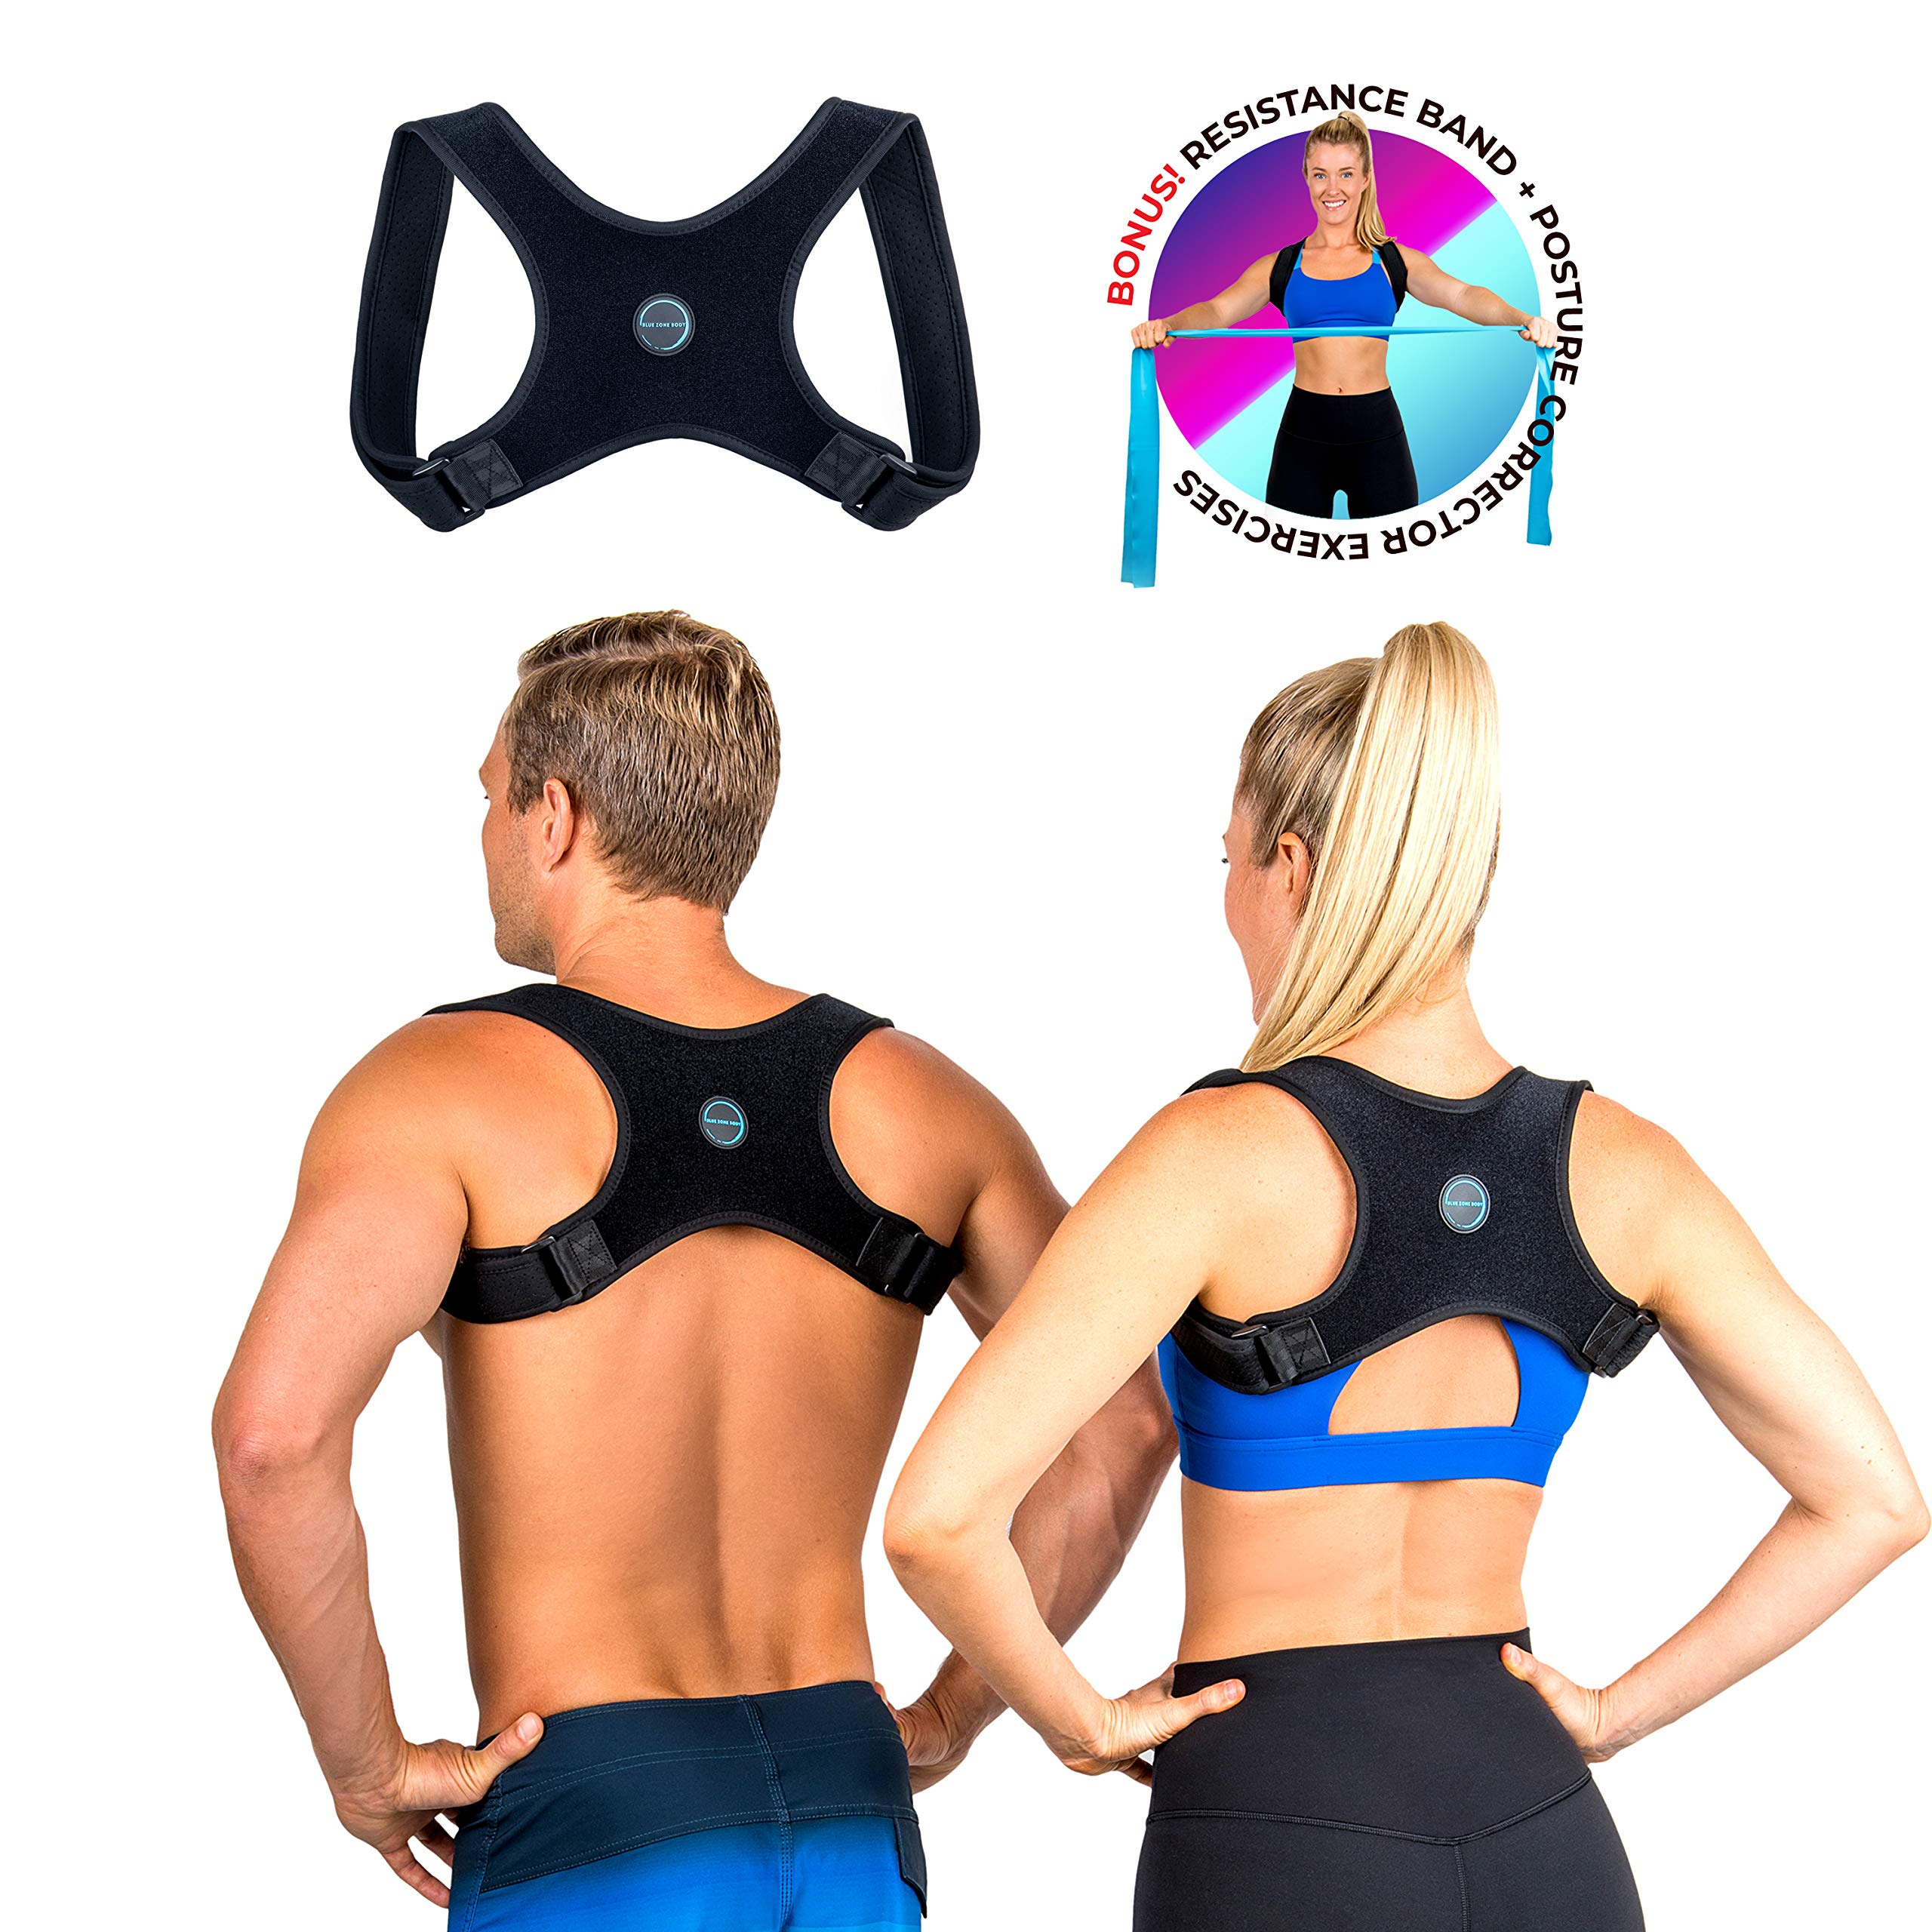 Posture Corrector for Men and Women- FDA Approved Fully Adjustable and Lightweight Back Brace for Neck, Shoulder & Back Pain Relief- Best Slouching Corrector for Improved Posture (One Size) by Blue Zone Body